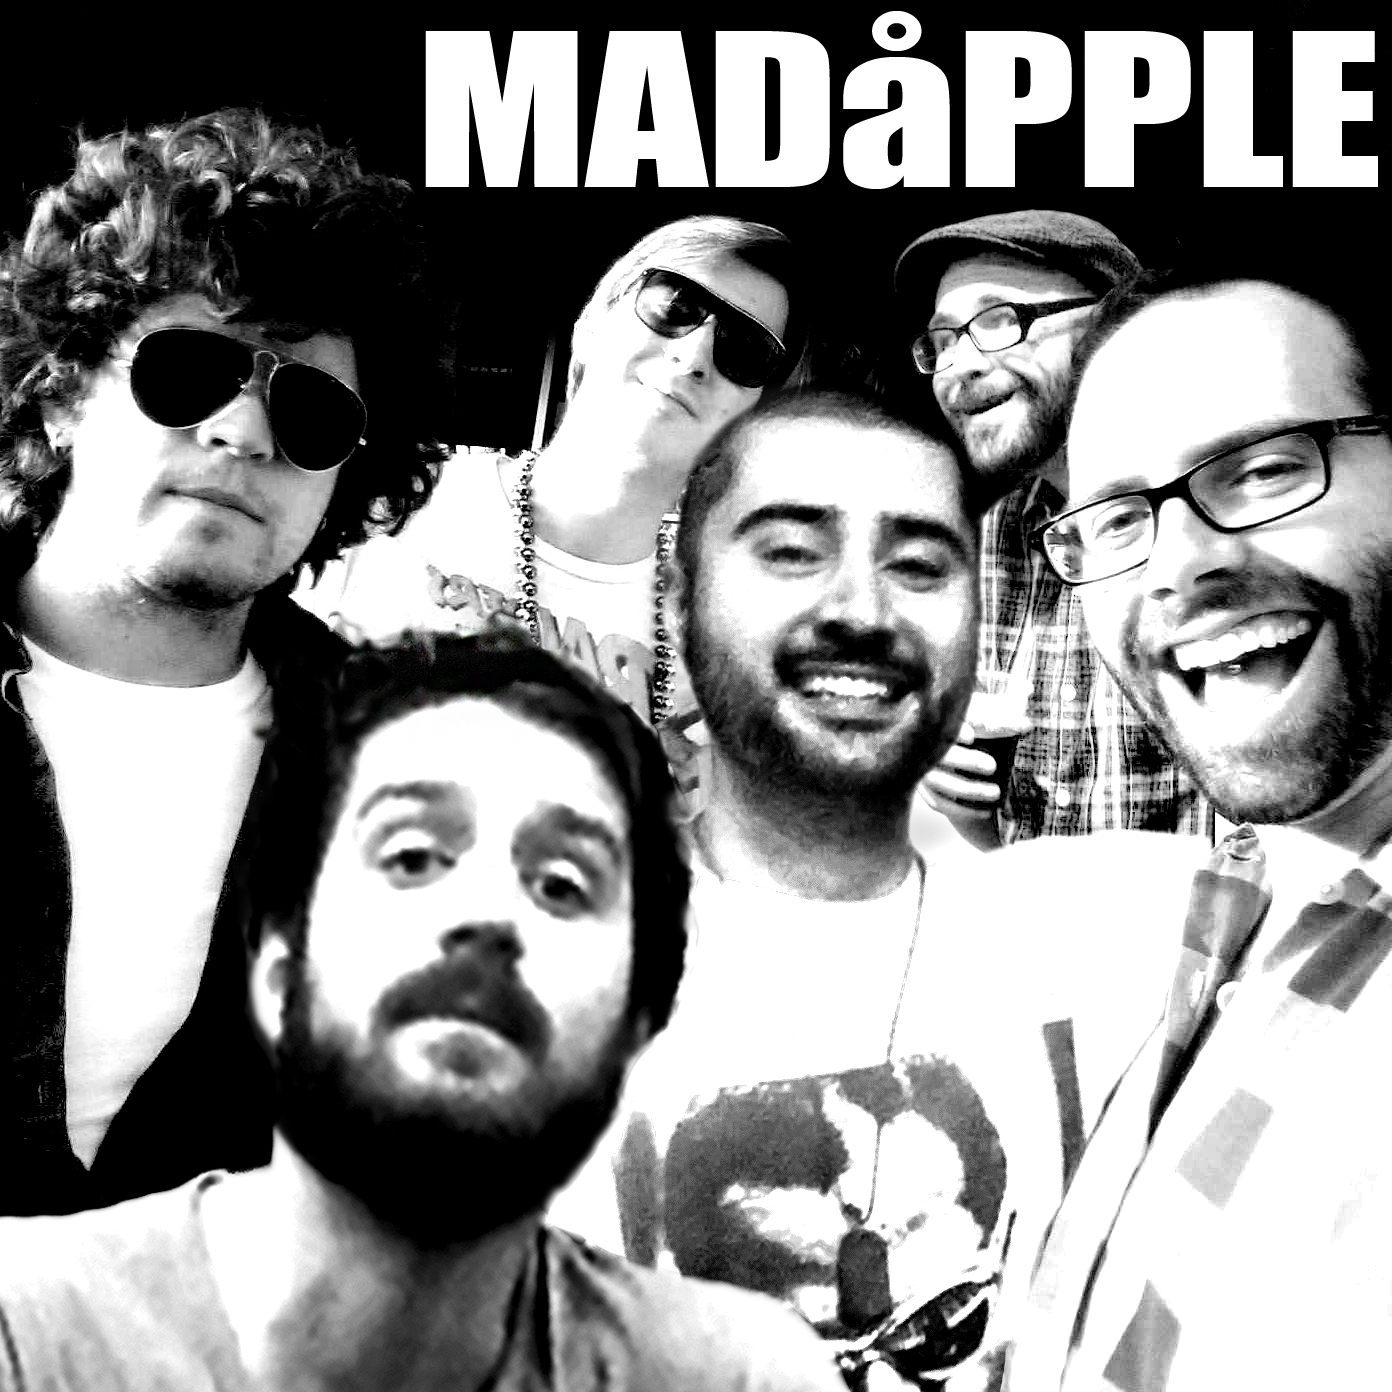 Madapple Mates